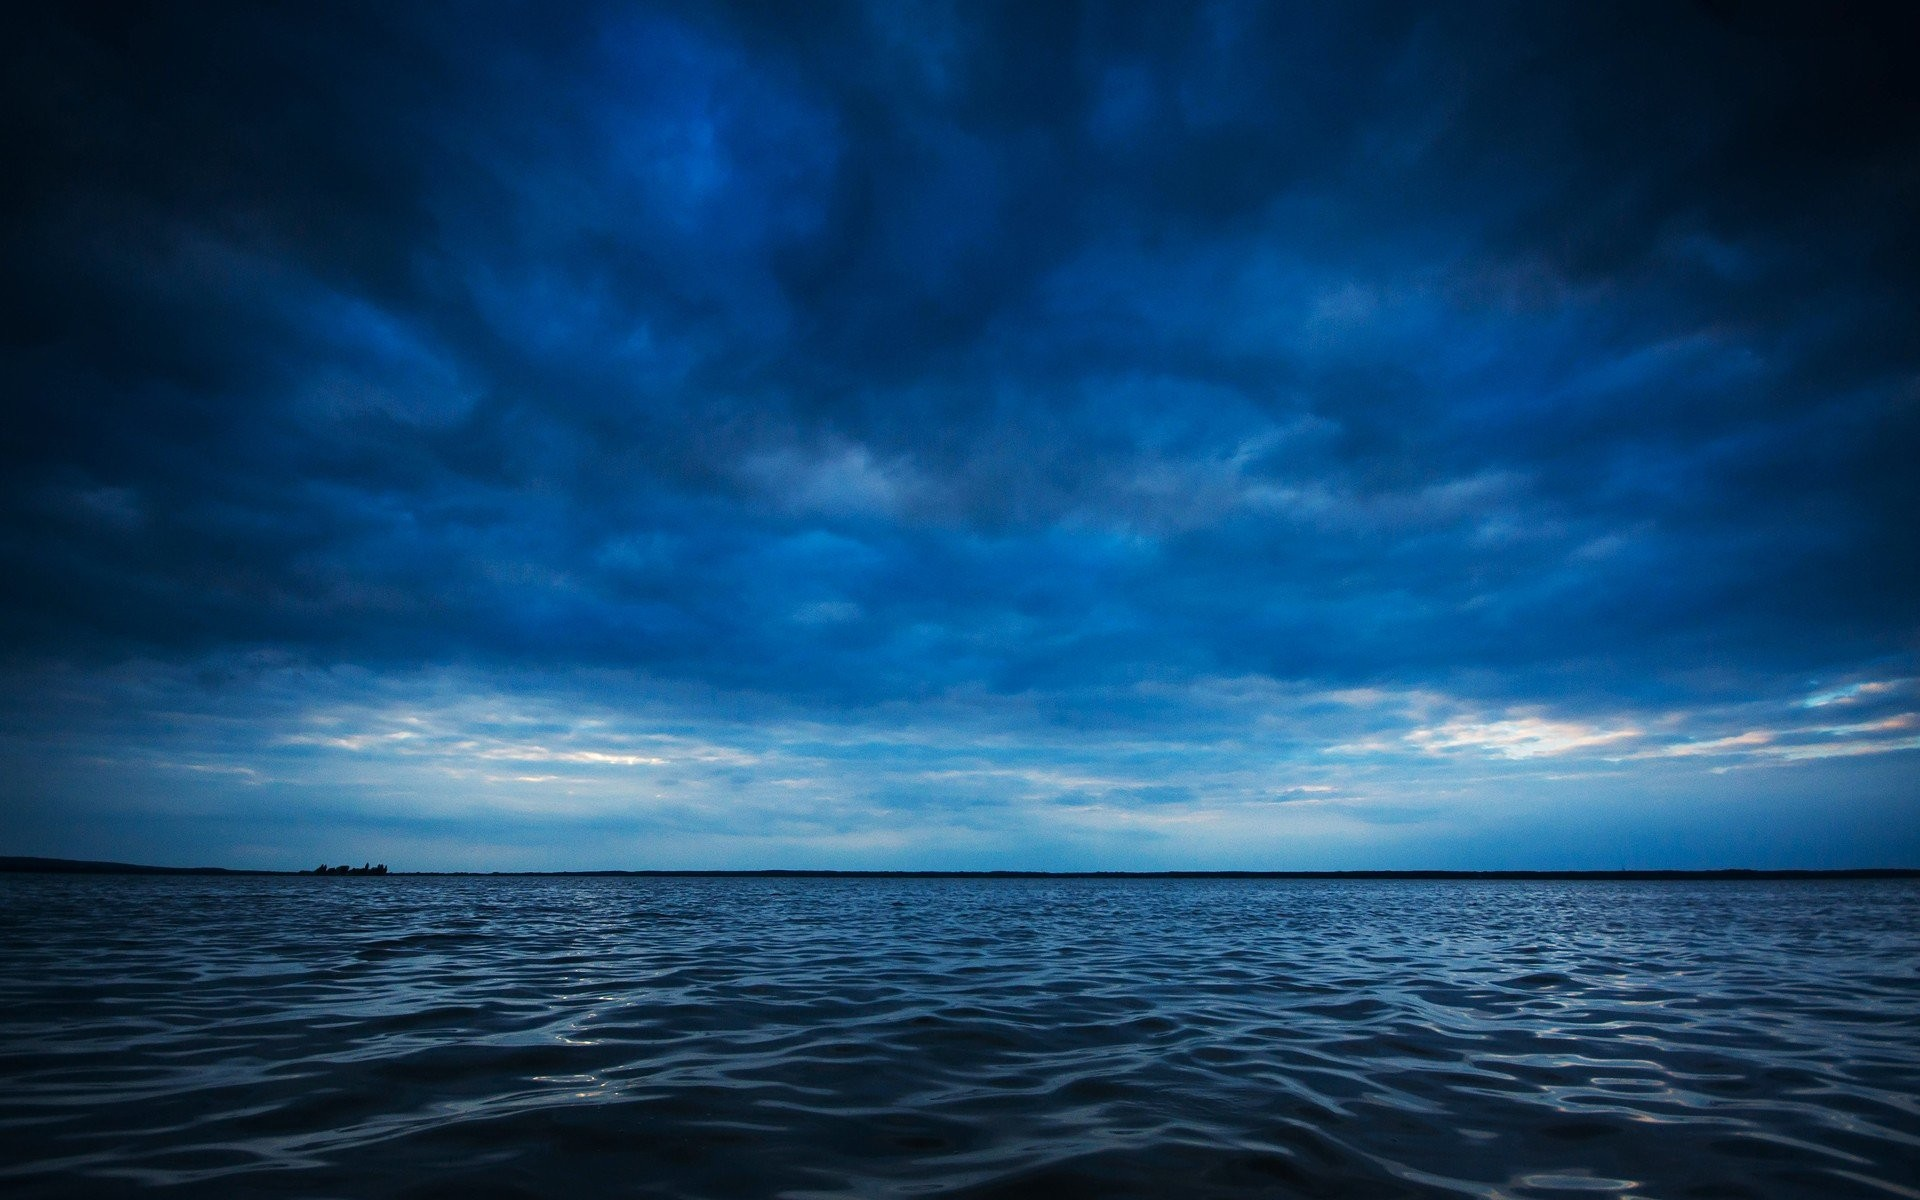 1920x1200 Water blue ocean clouds horizon waves lakes waterscapes sea wallpaper |   | 336965 | WallpaperUP